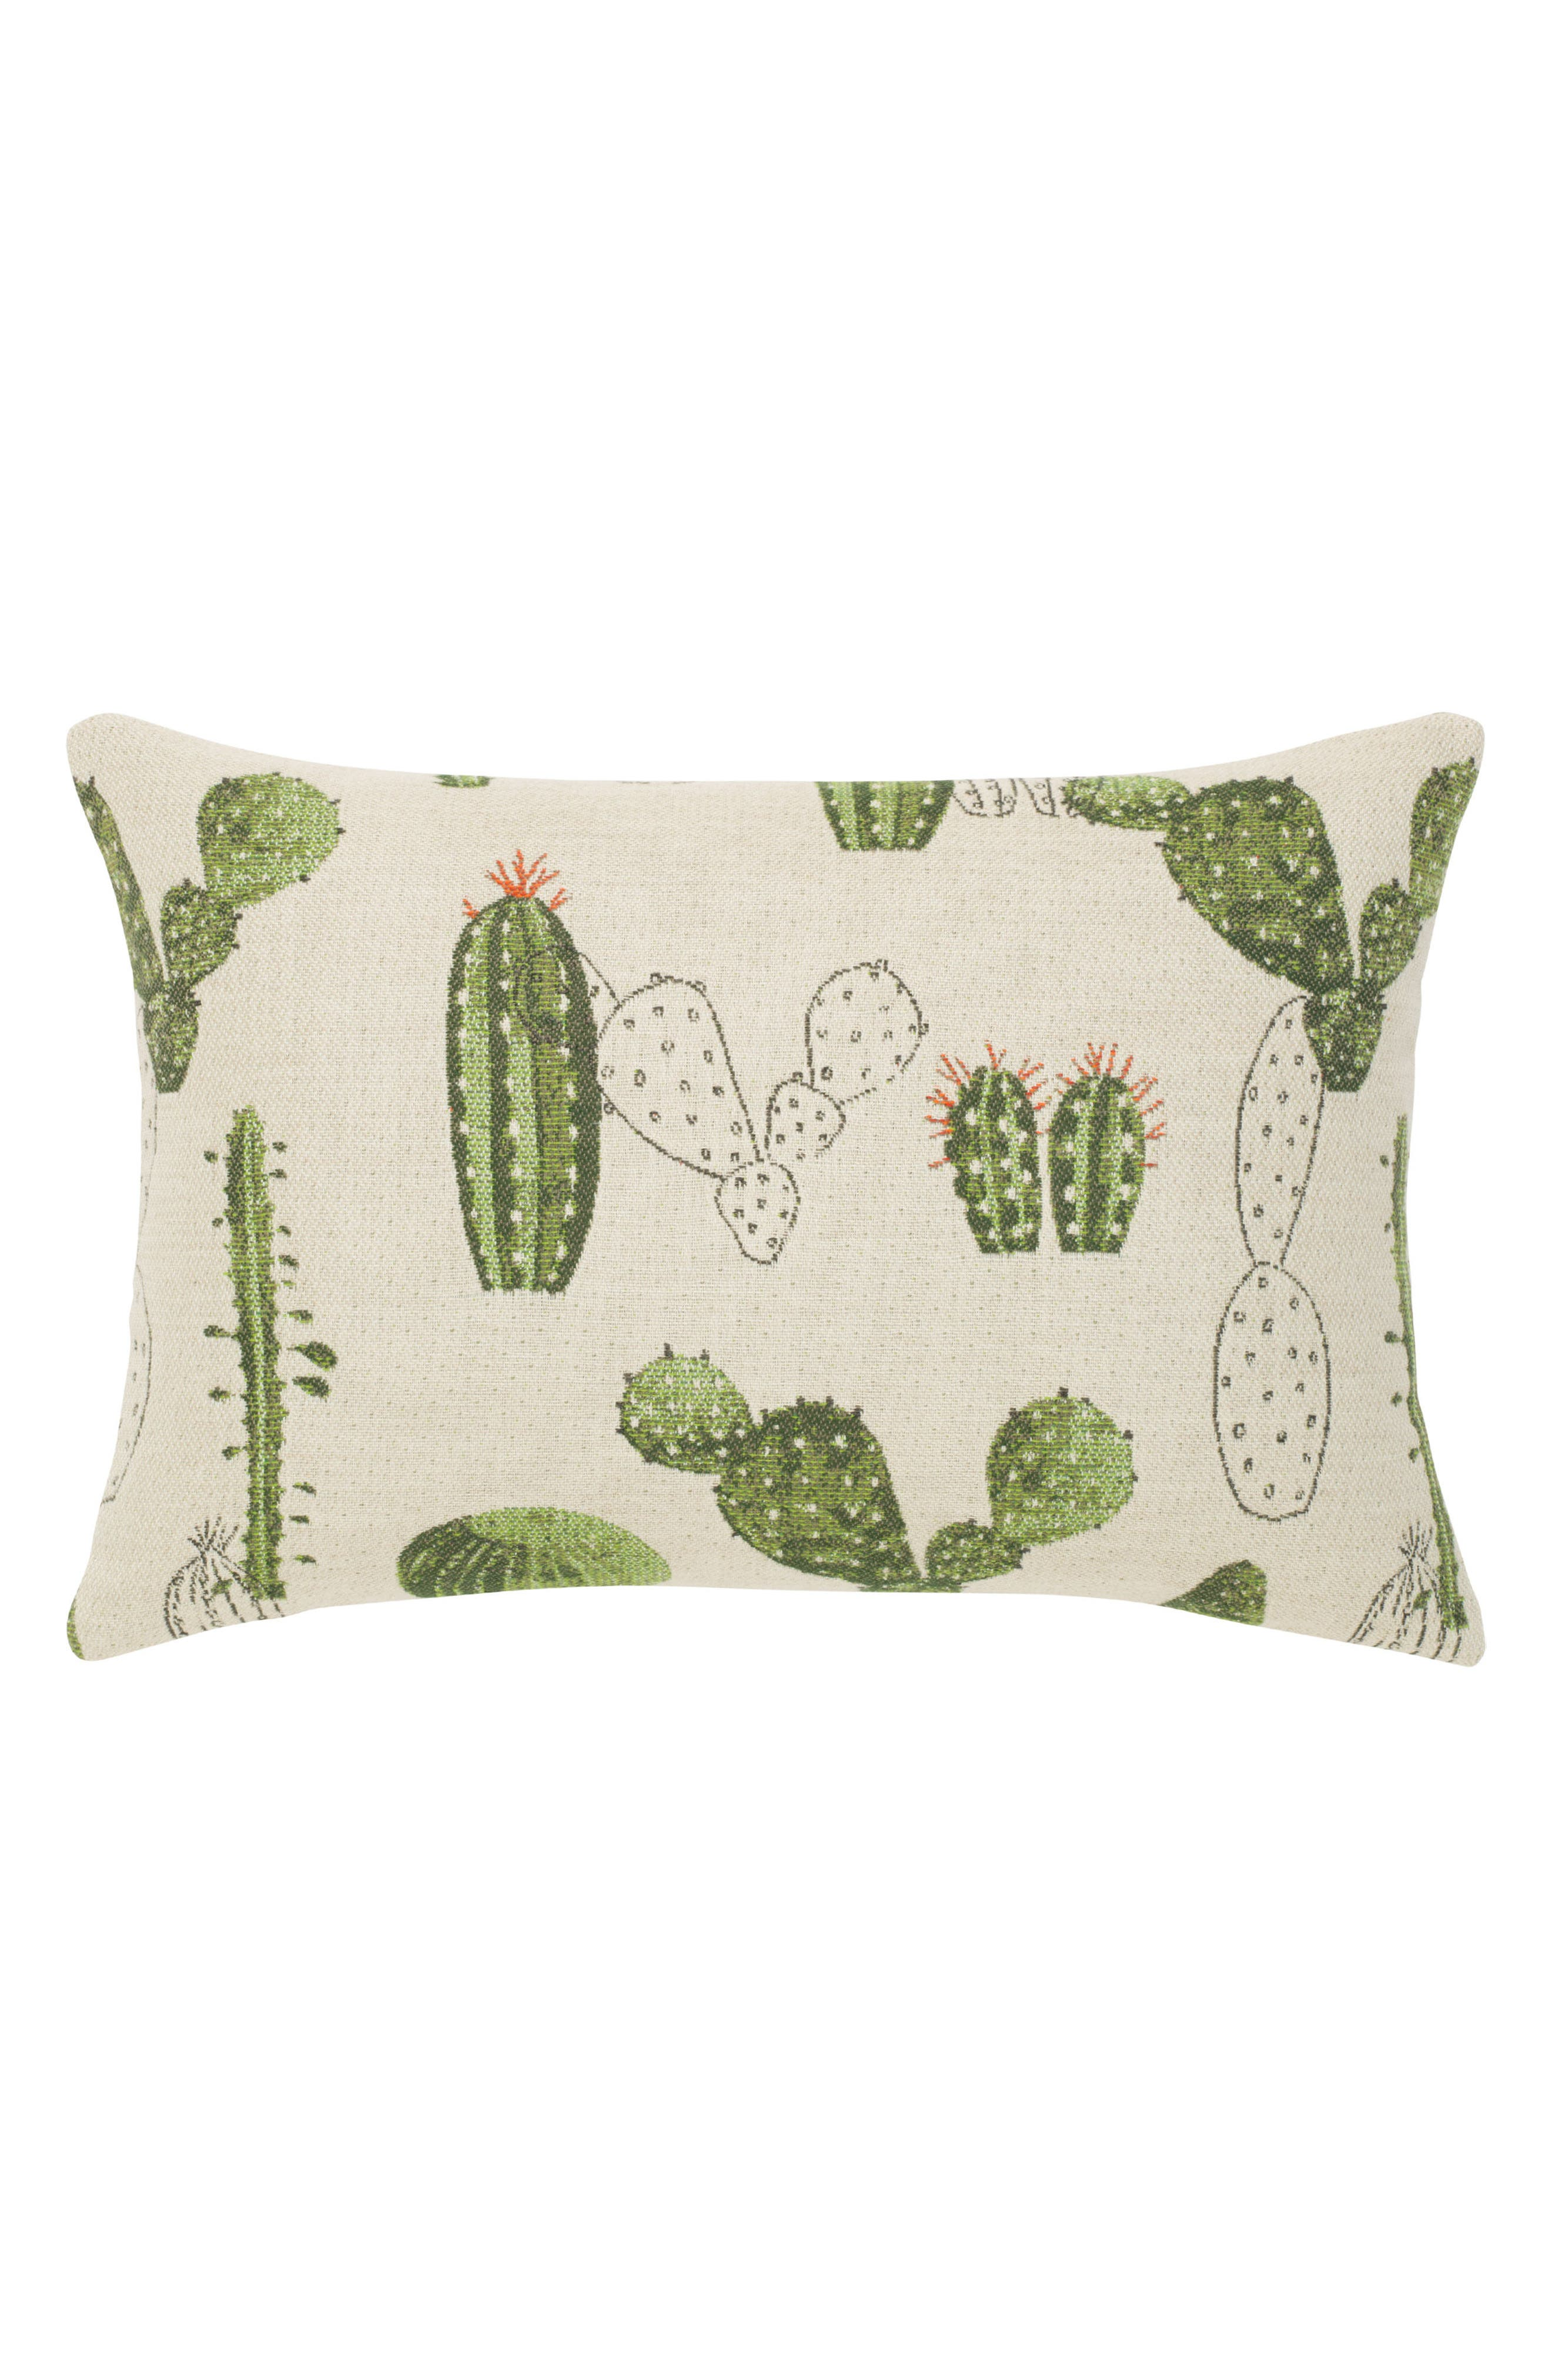 Cacti Indoor/Outdoor Accent Pillow,                         Main,                         color, 300